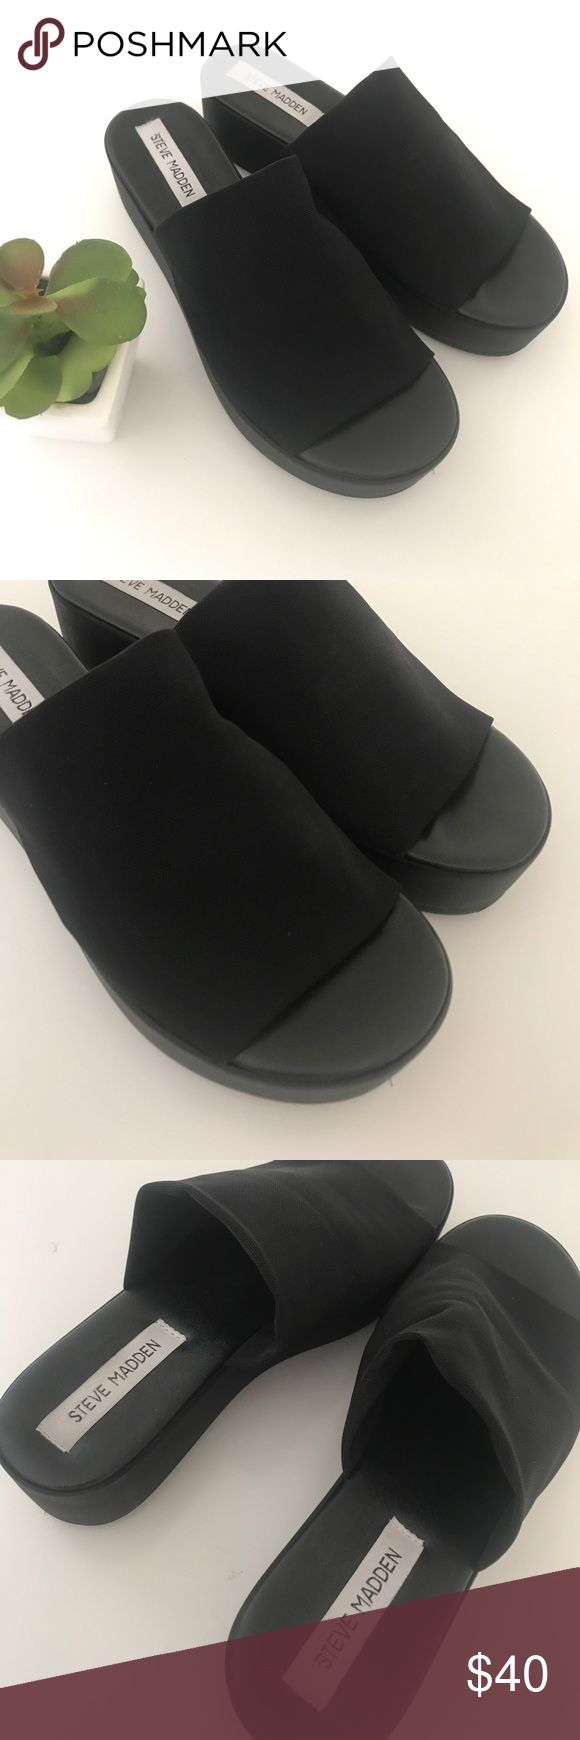 🔥 Steve Madden Platform Sandals 🔥 In excellent condition super clean inside and out pretty much brand new! Size women's 8 sorry no trades Steve Madden Shoes Platforms